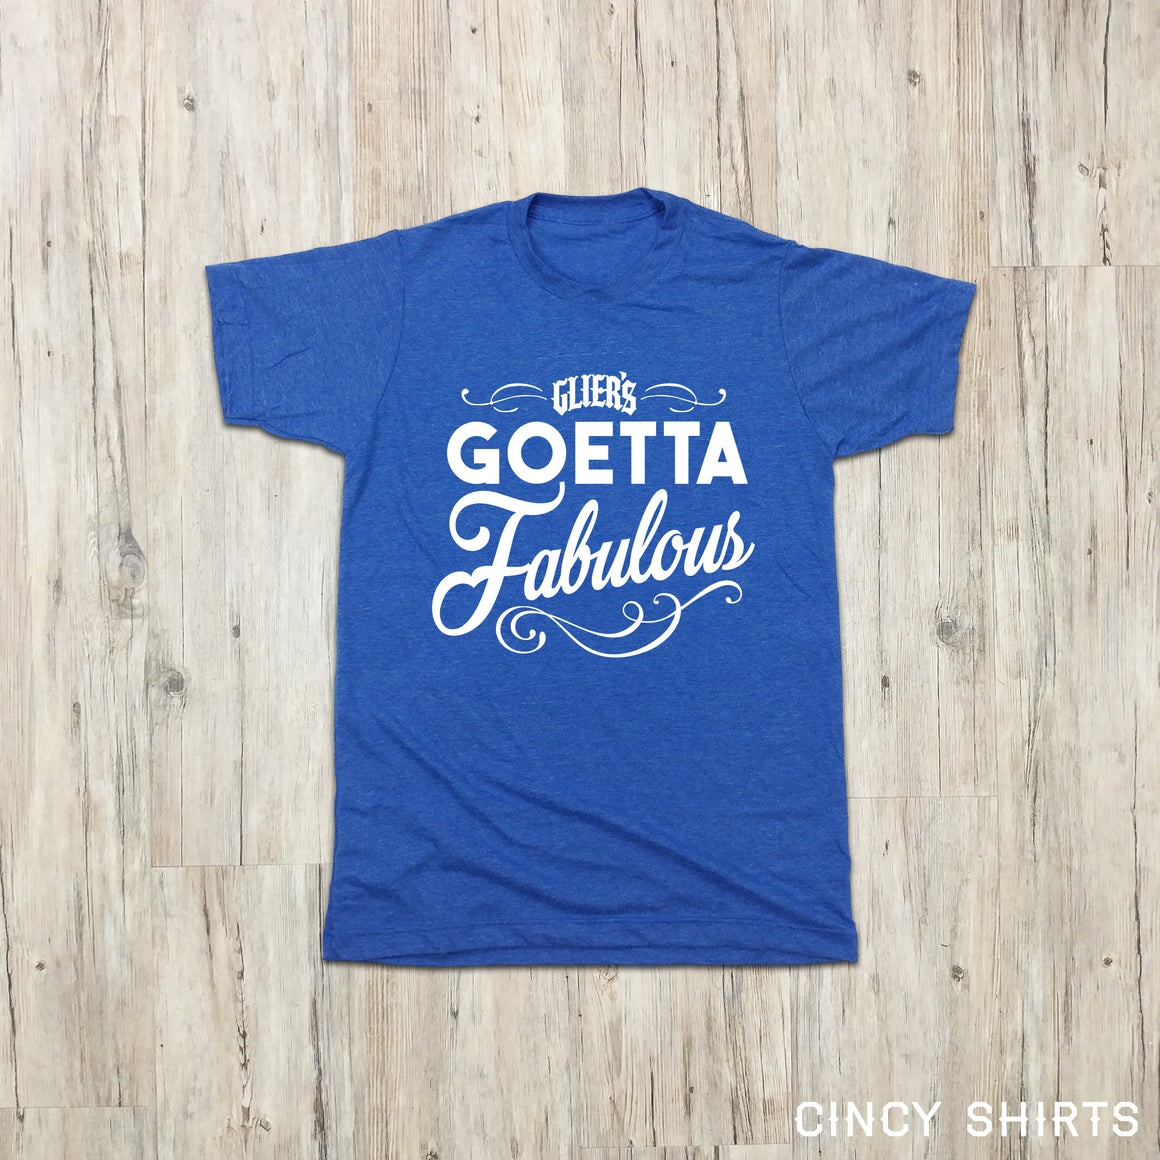 Glier's Goetta Fabulous - Youth Sizes